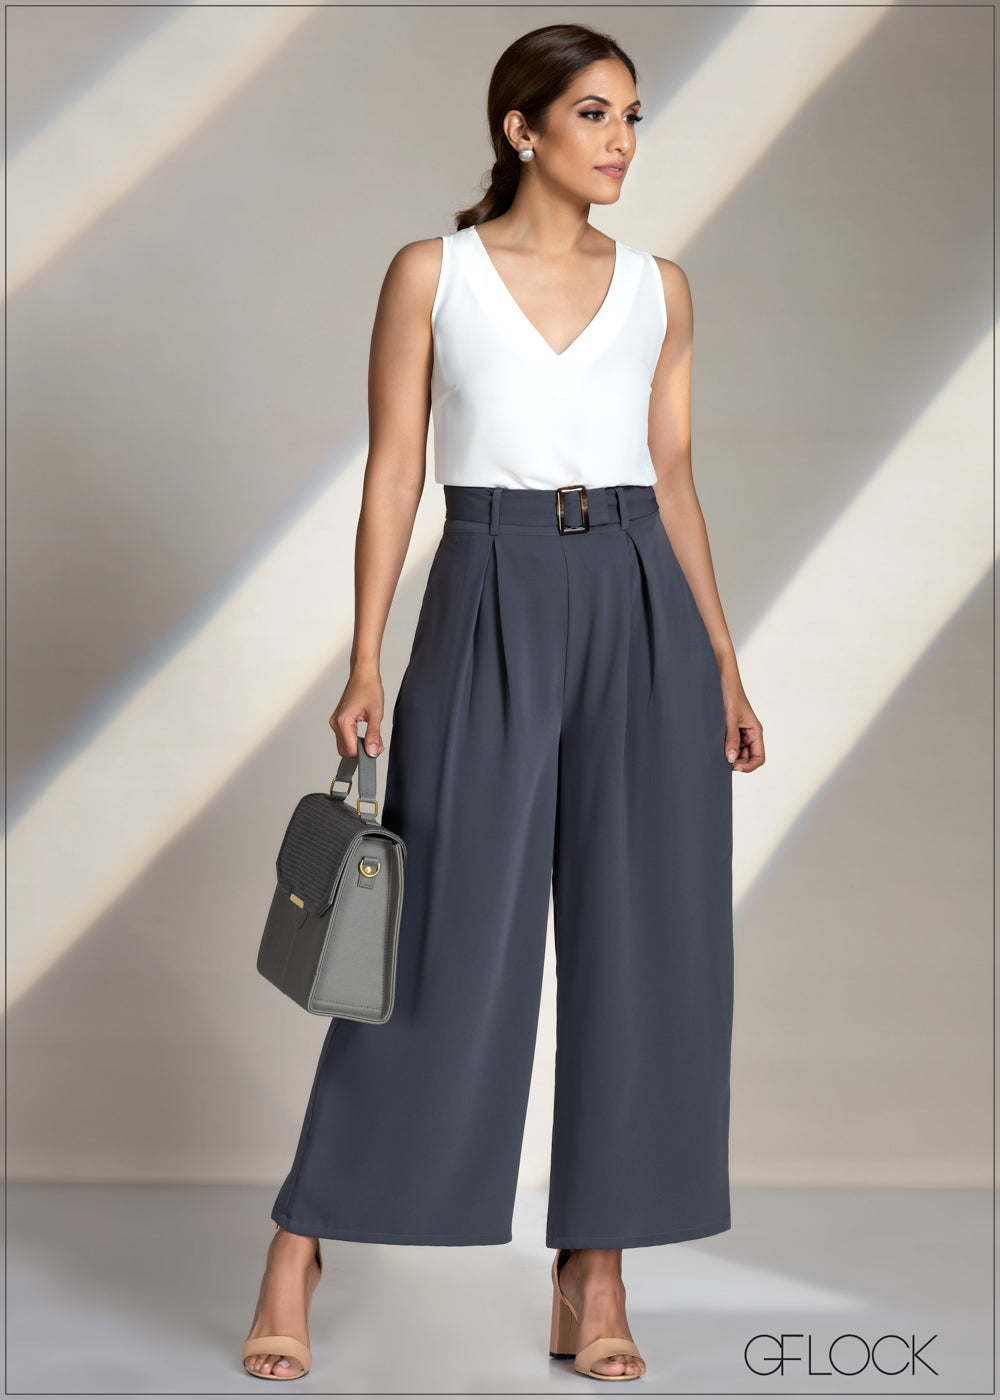 Belted Flair Work Wear Pant